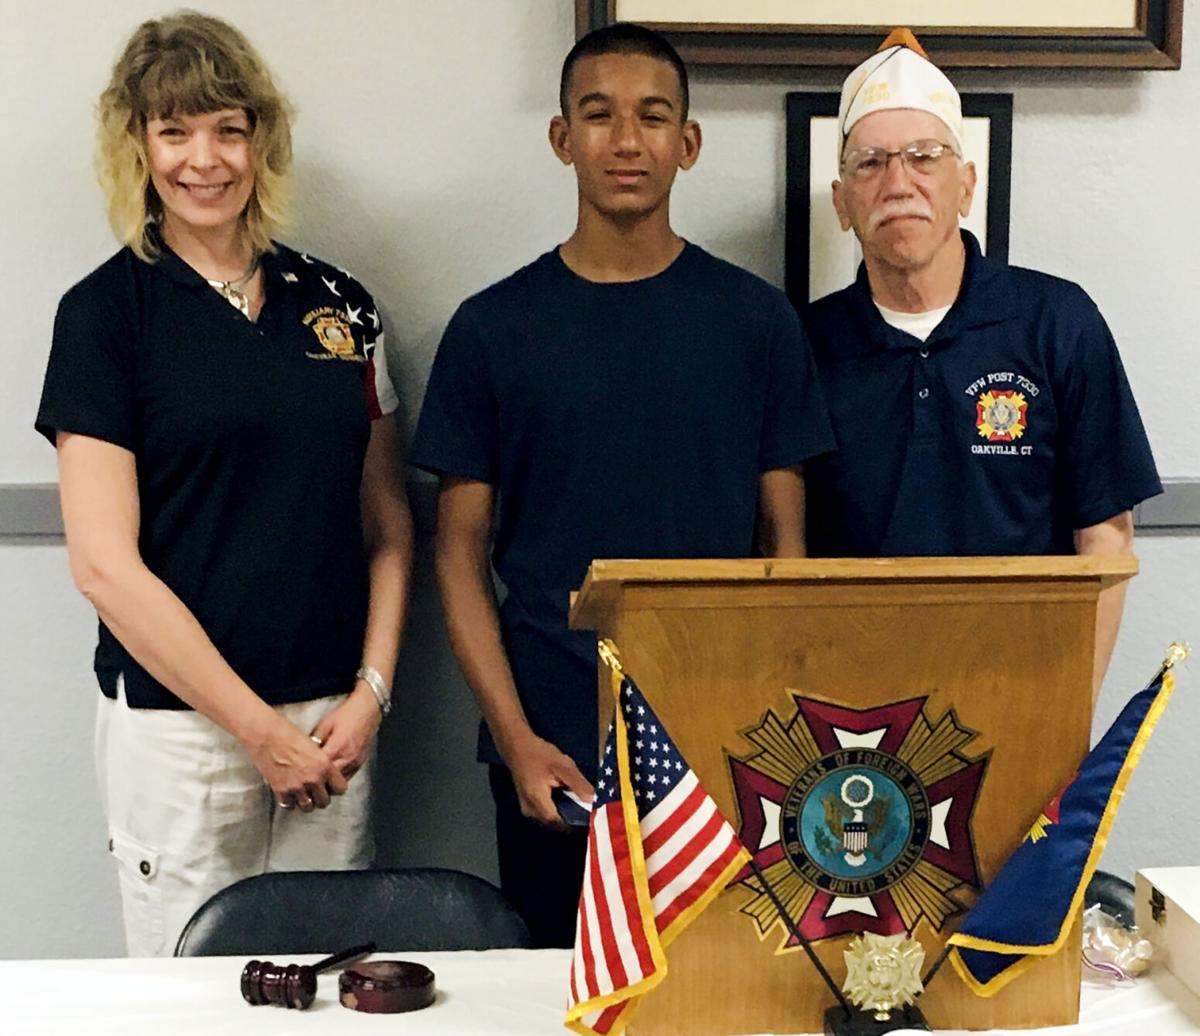 From VFW Post 7330: Two Students Named as Winners  in Voice of Democracy Essay Contest